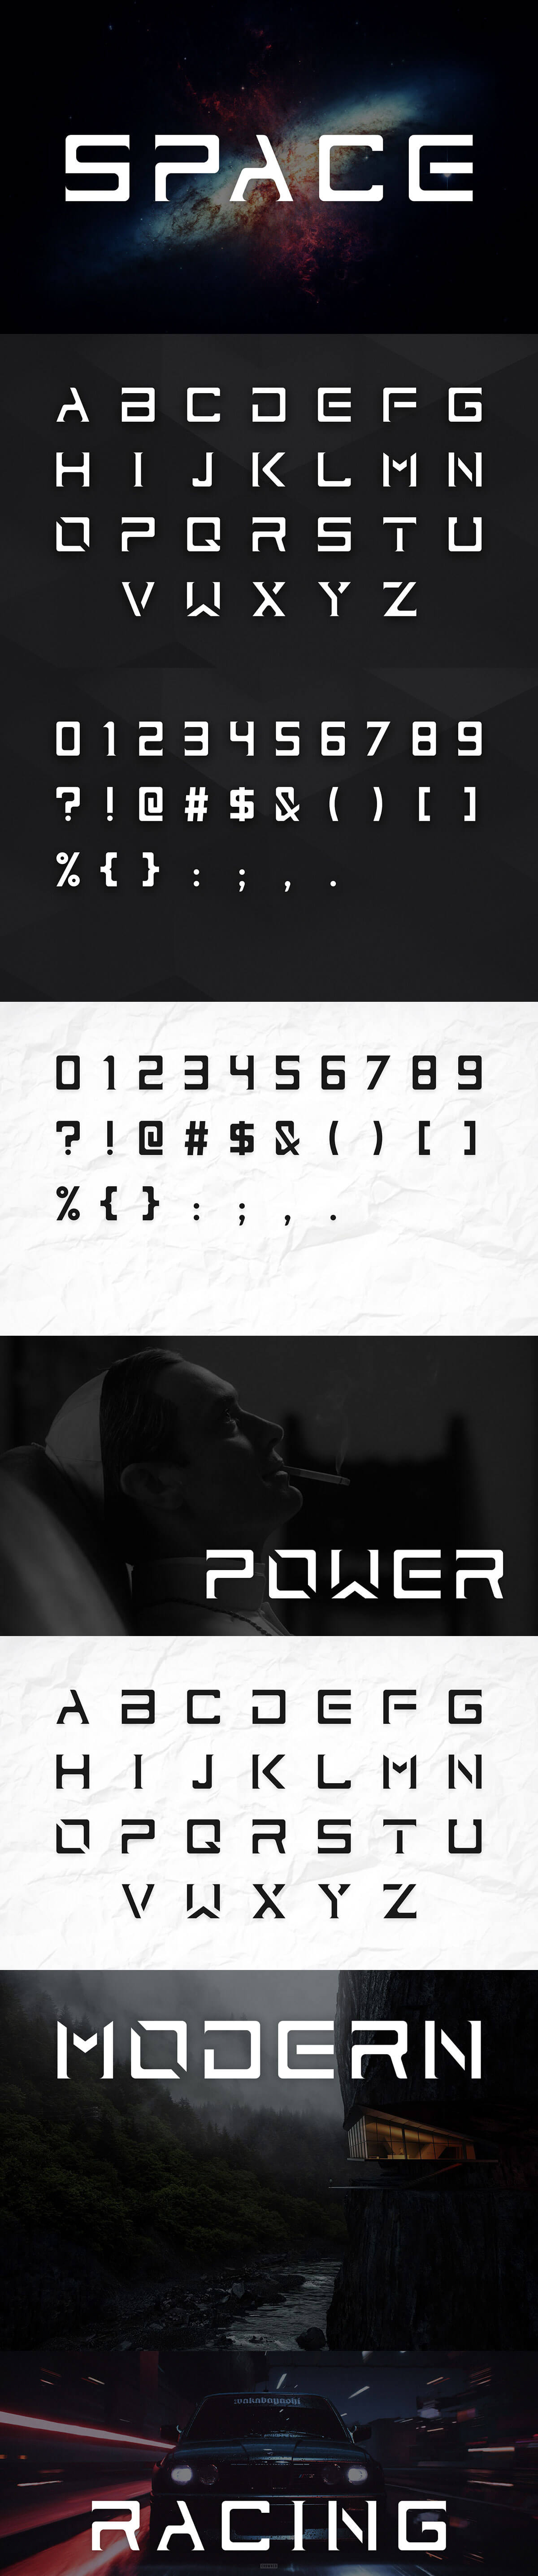 Free ImPerfect23 Display Font